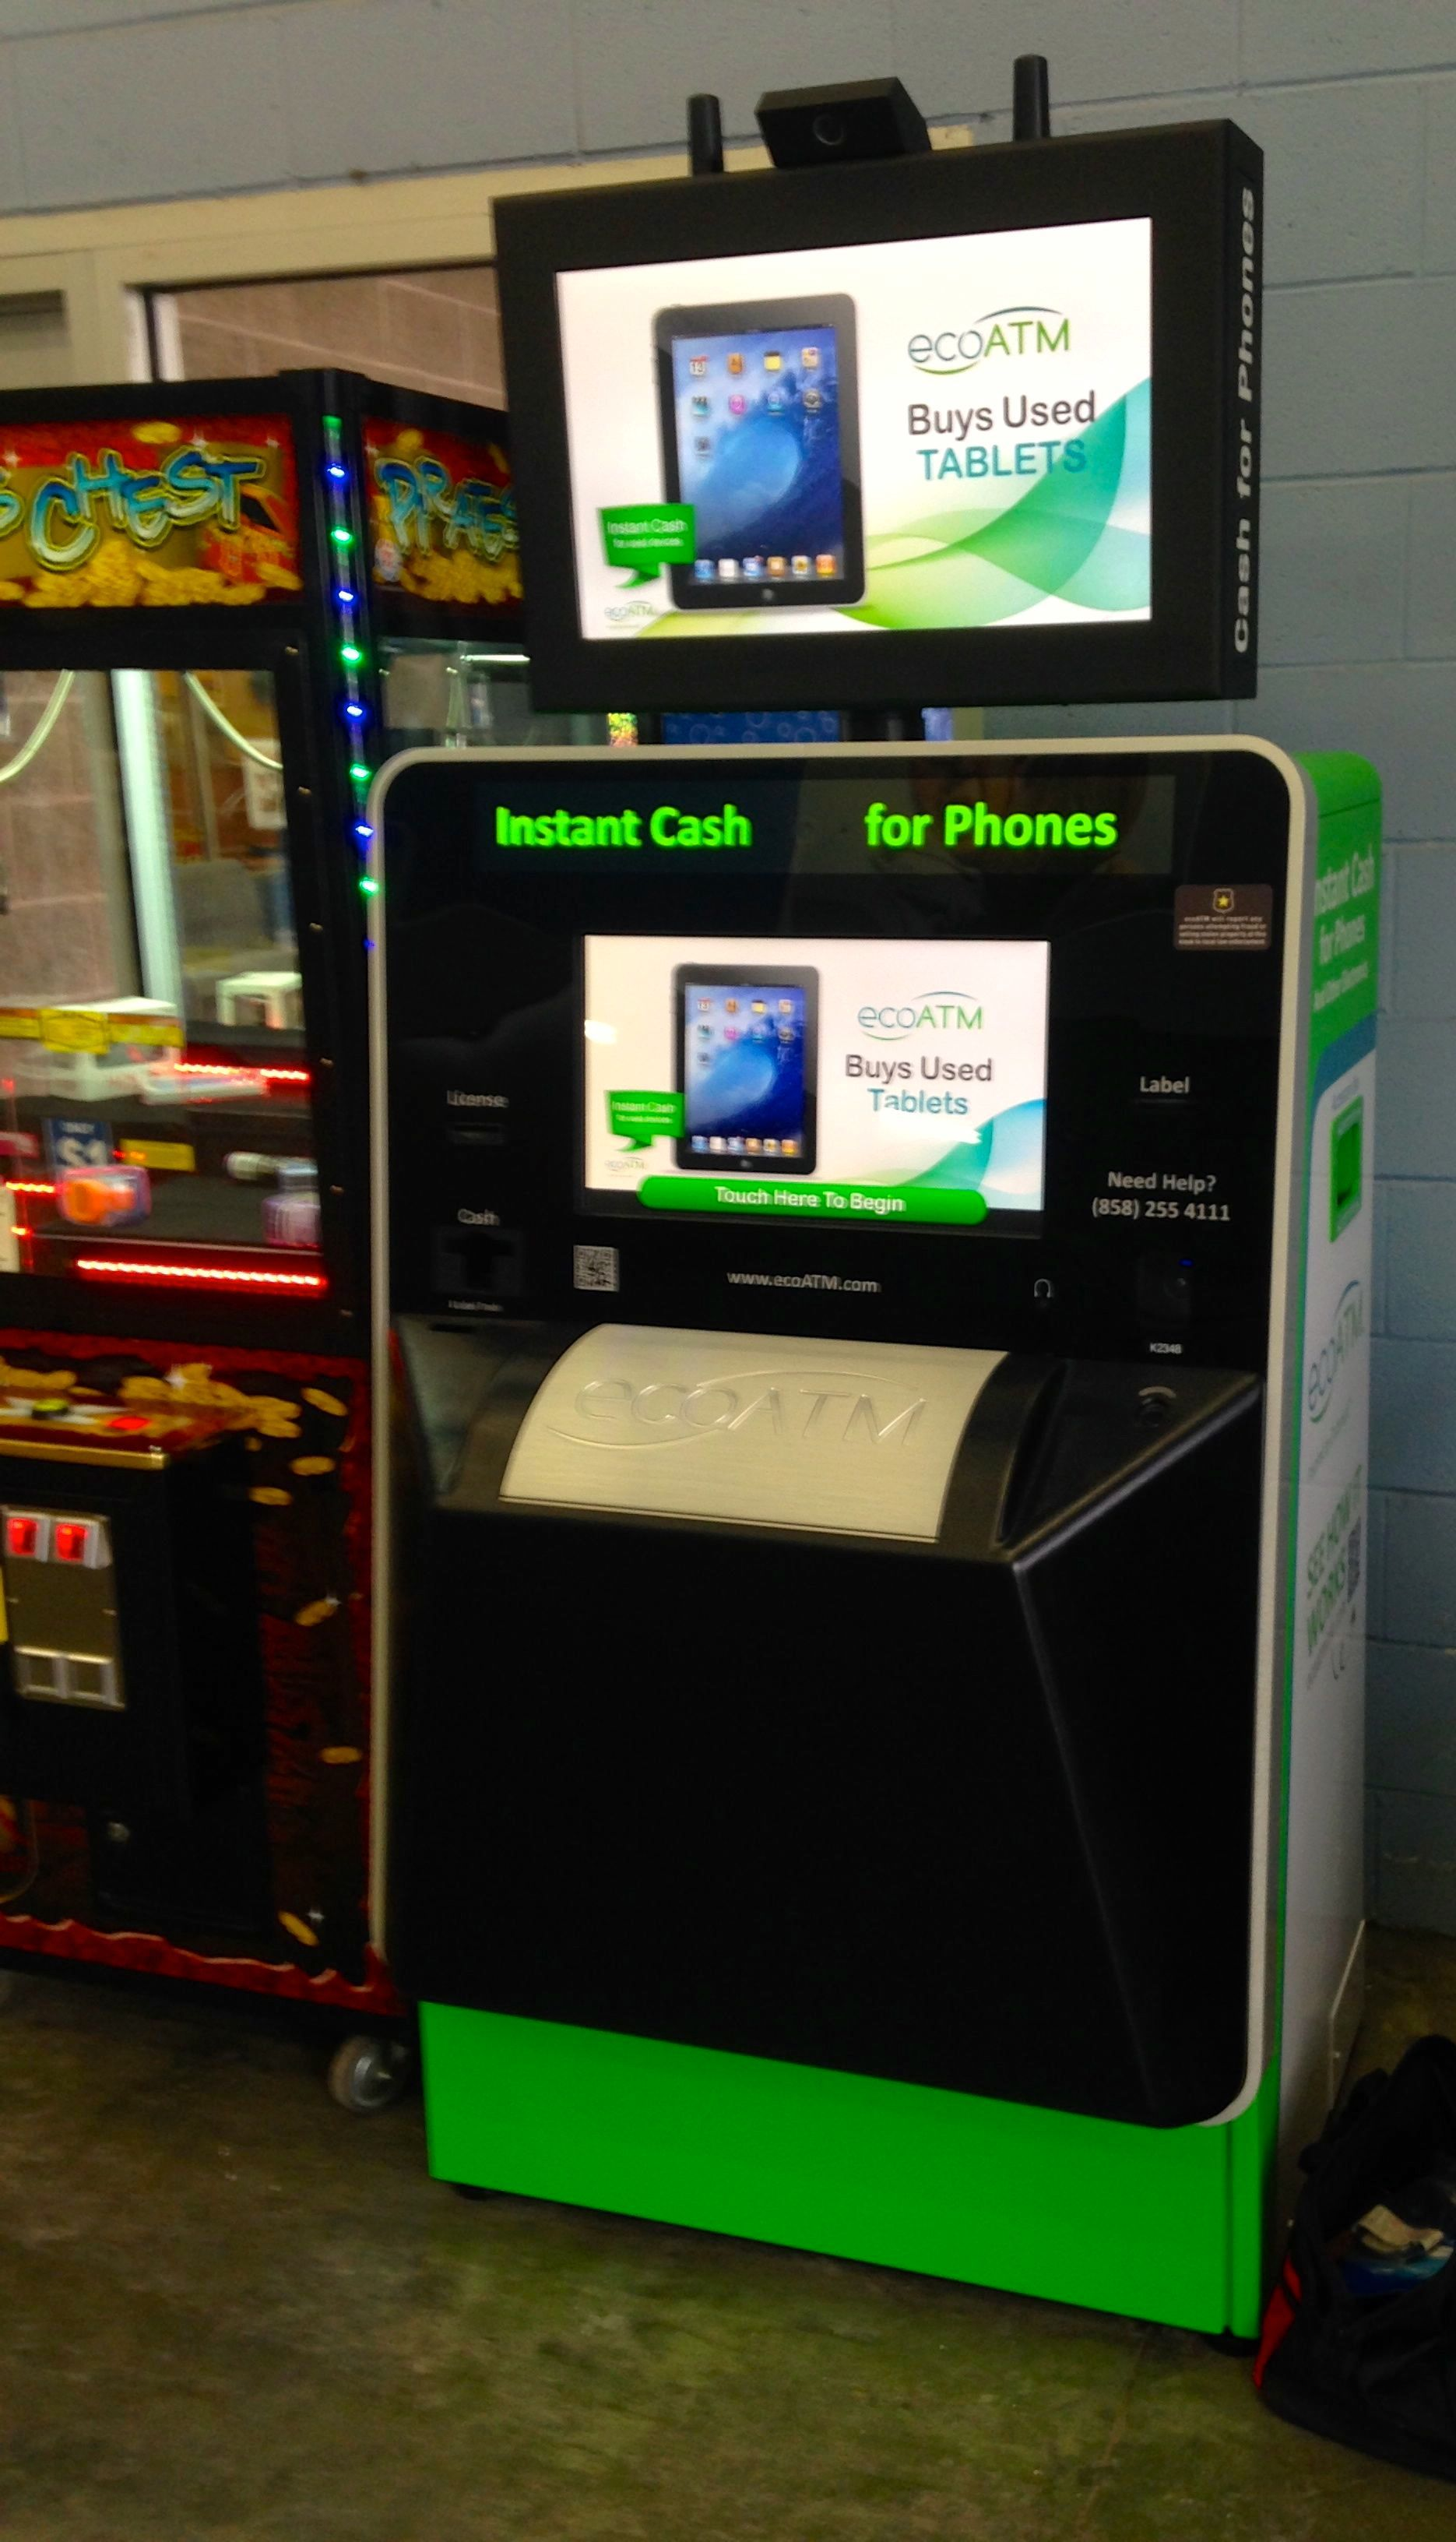 This ecoATM kiosk can be found in Shelbyville, Indiana! Click the